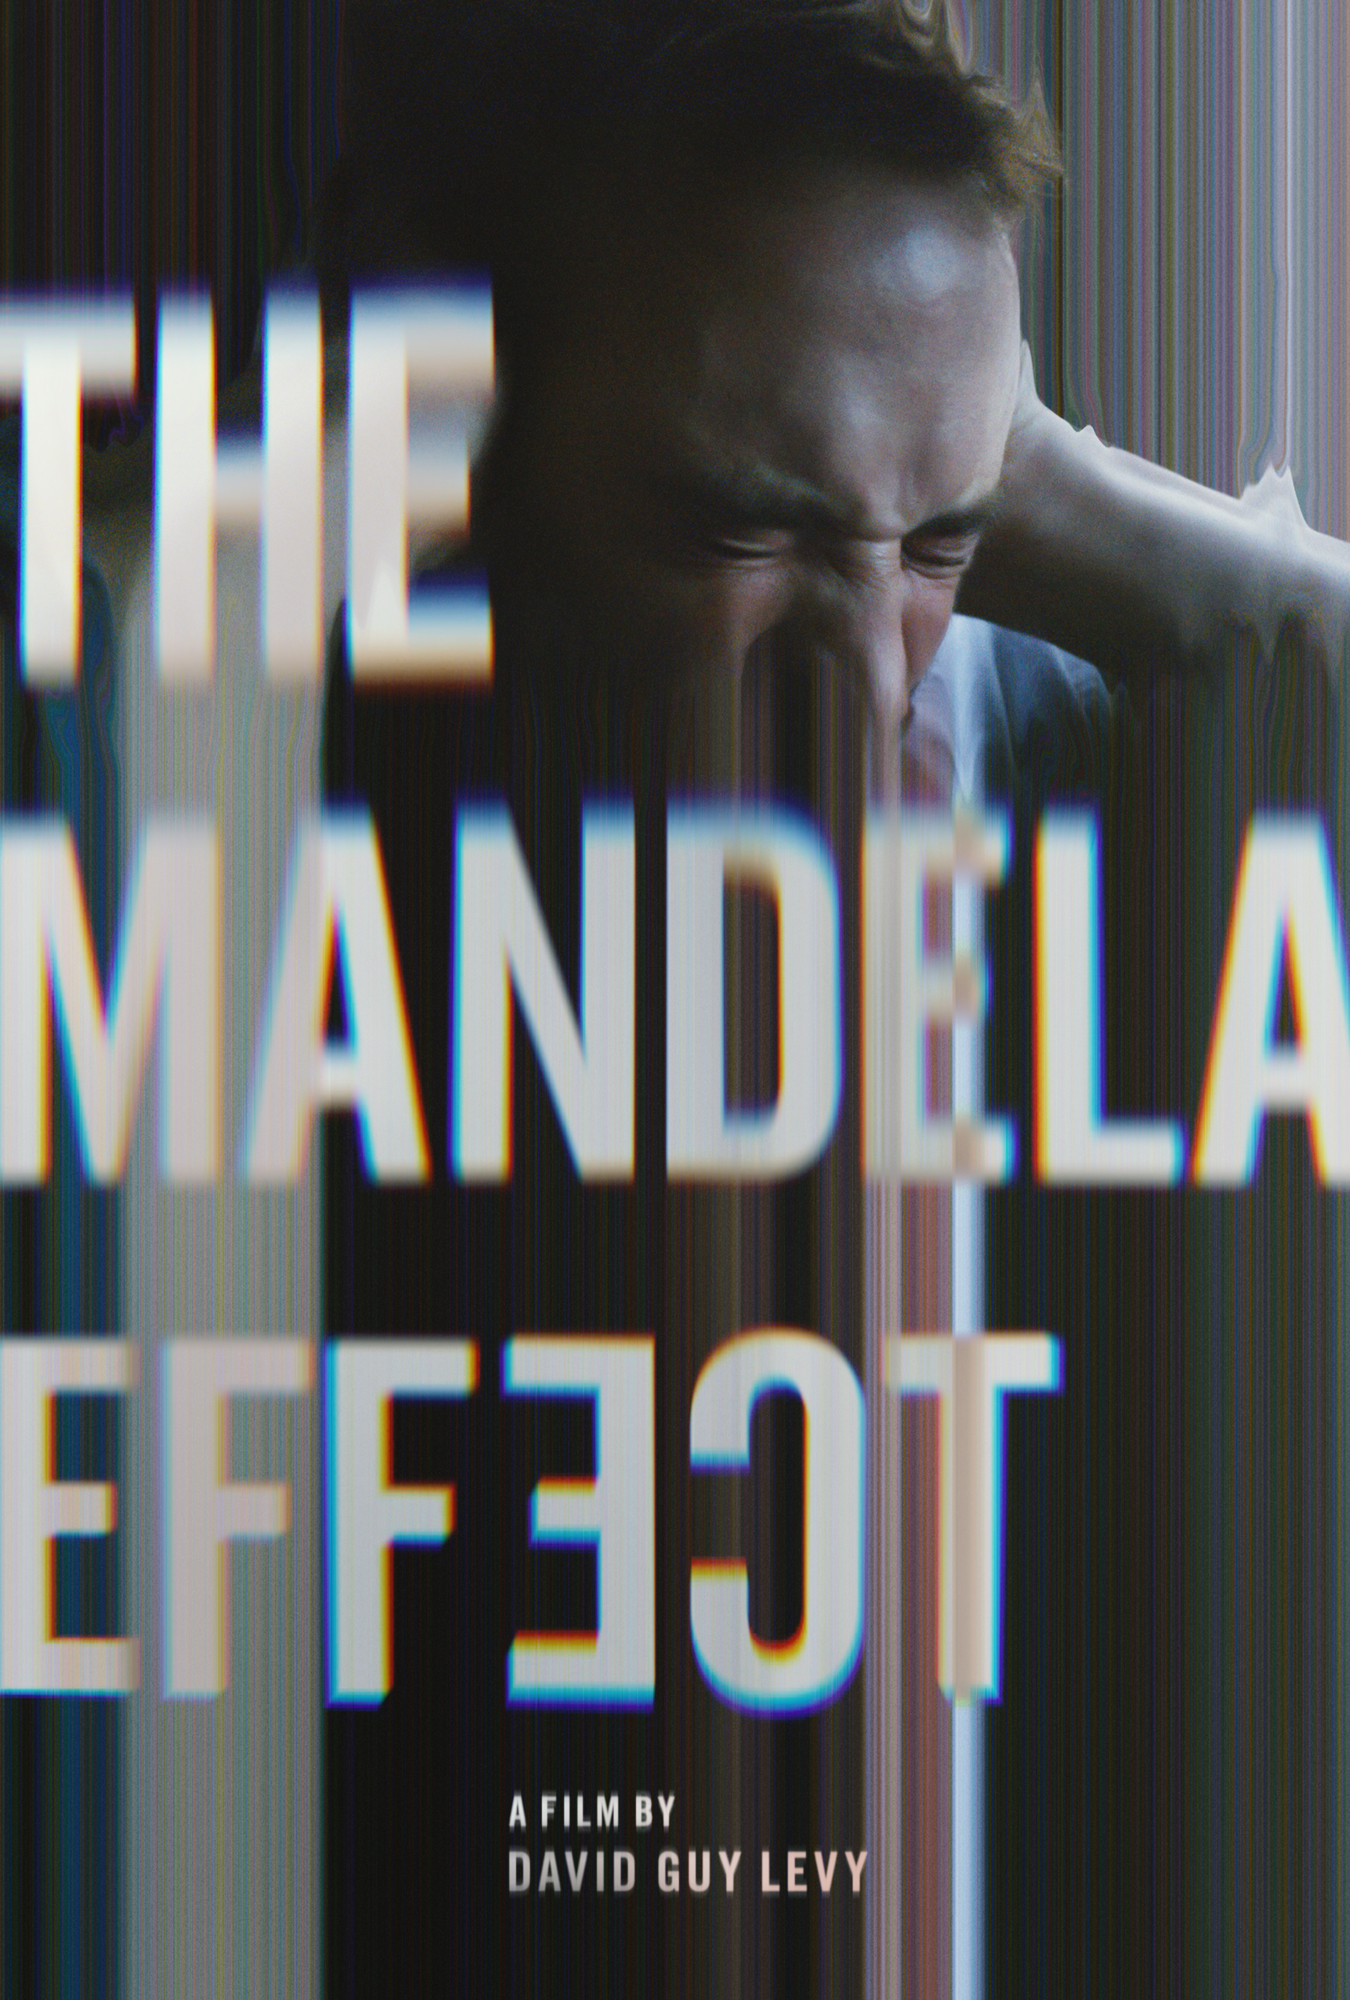 THE MANDELA EFFECT (2019) - A man becomes obsessed with facts and events that have been collectively misremembered by thousands of people. Believing the phenomena to be the symptom of something larger, his obsession eventually leads him to question reality itself.Directed by David Guy Levy, the film stars Charlie Hofheimer, Aleksa Palladino, Robin Lord Taylor, and Clarke Peters. It will be released in theaters and on VOD on December 6, 2019 through Gravitas Ventures.